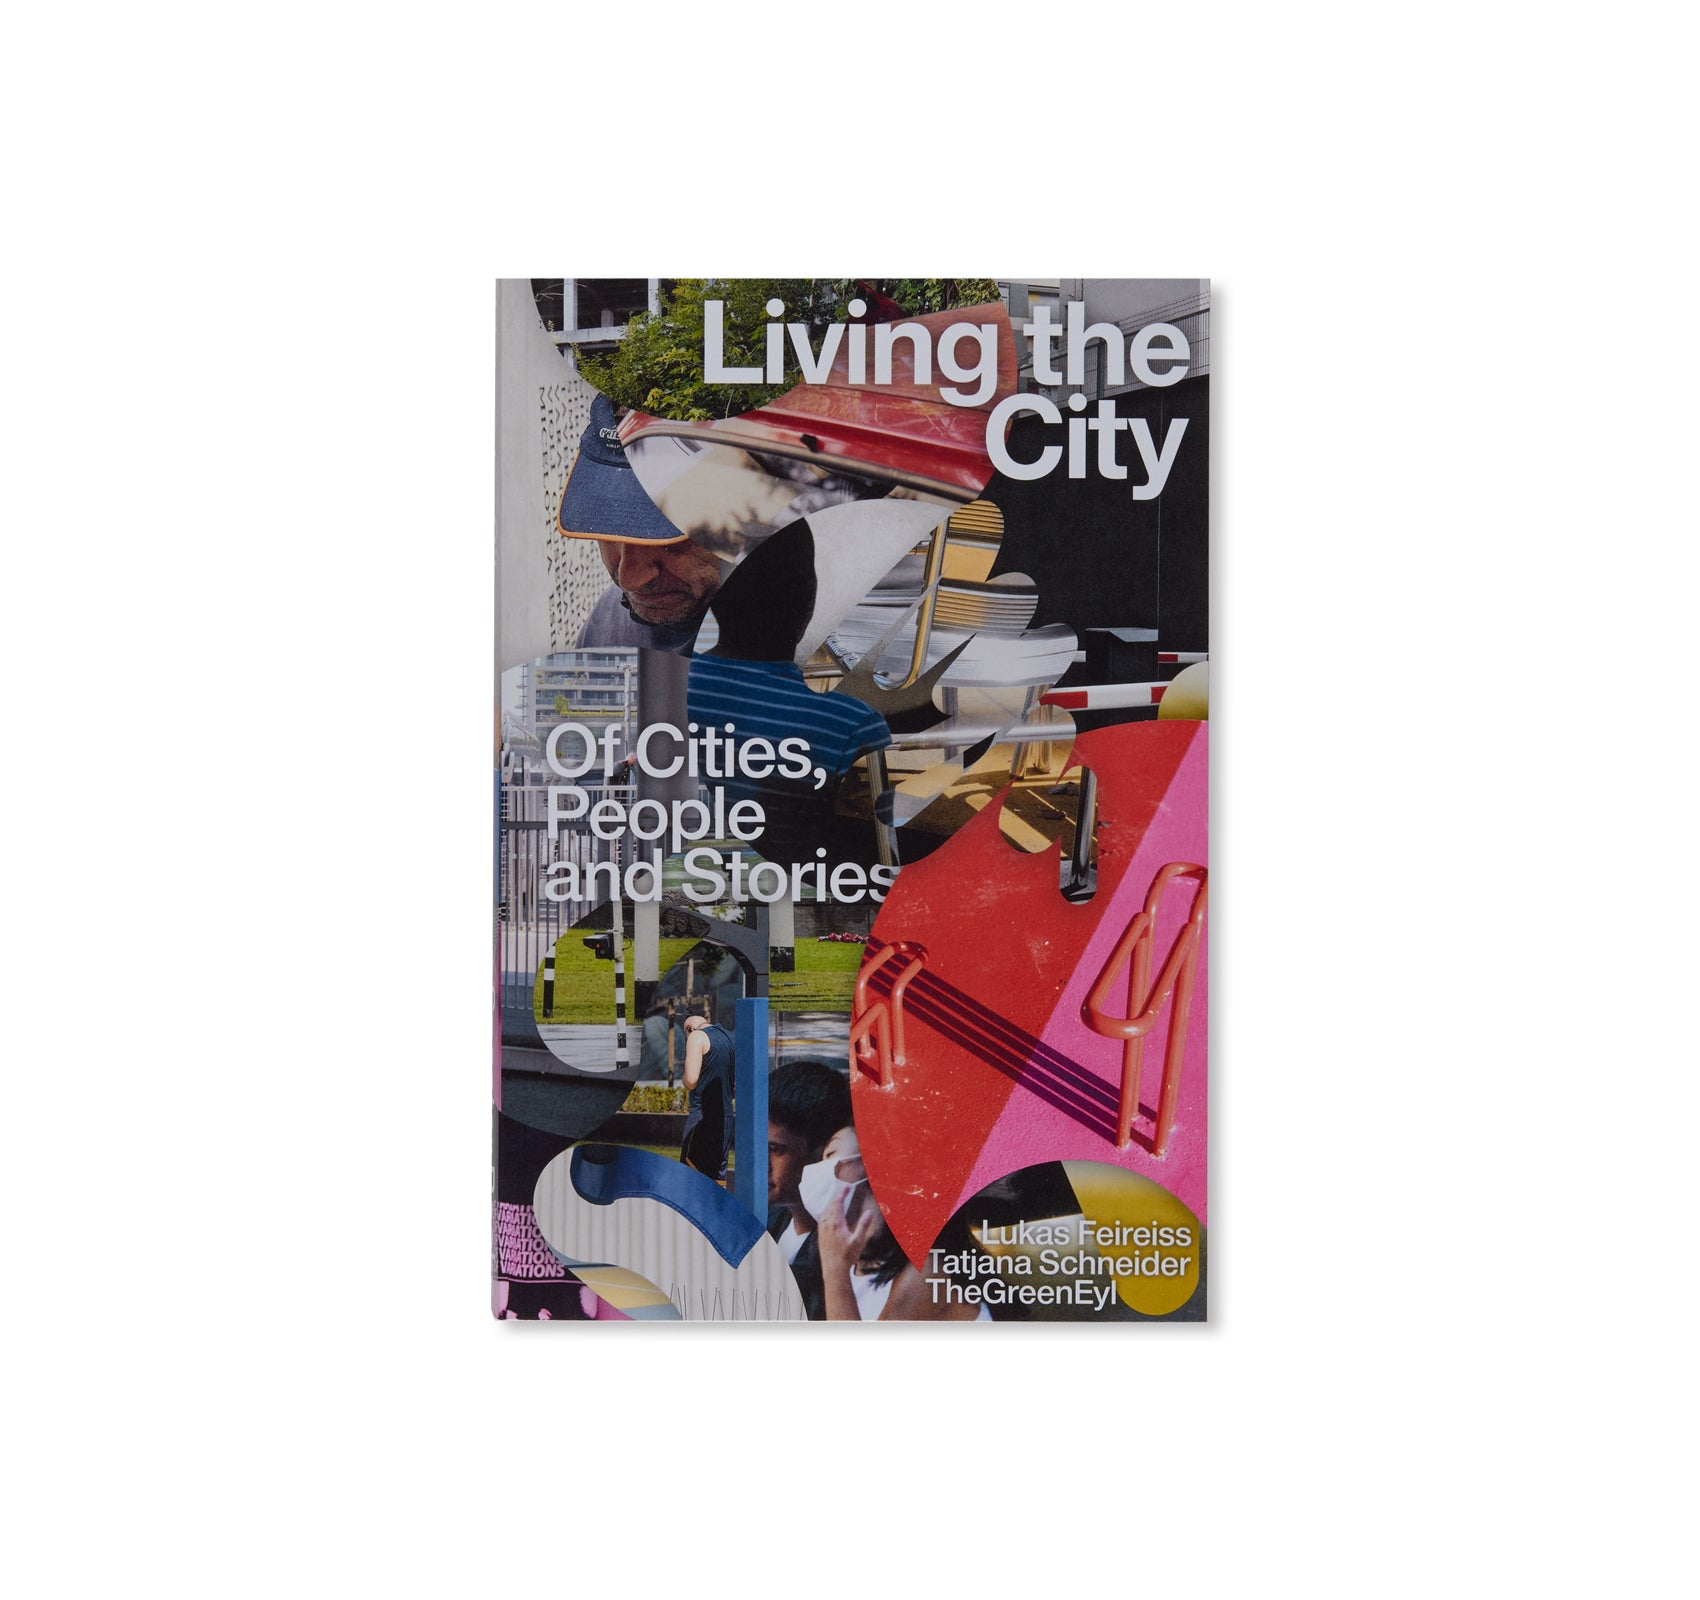 LIVING THE CITY OF CITIES, PEOPLE AND STORIES by Lukas Feireiss and Tatjana Schneider